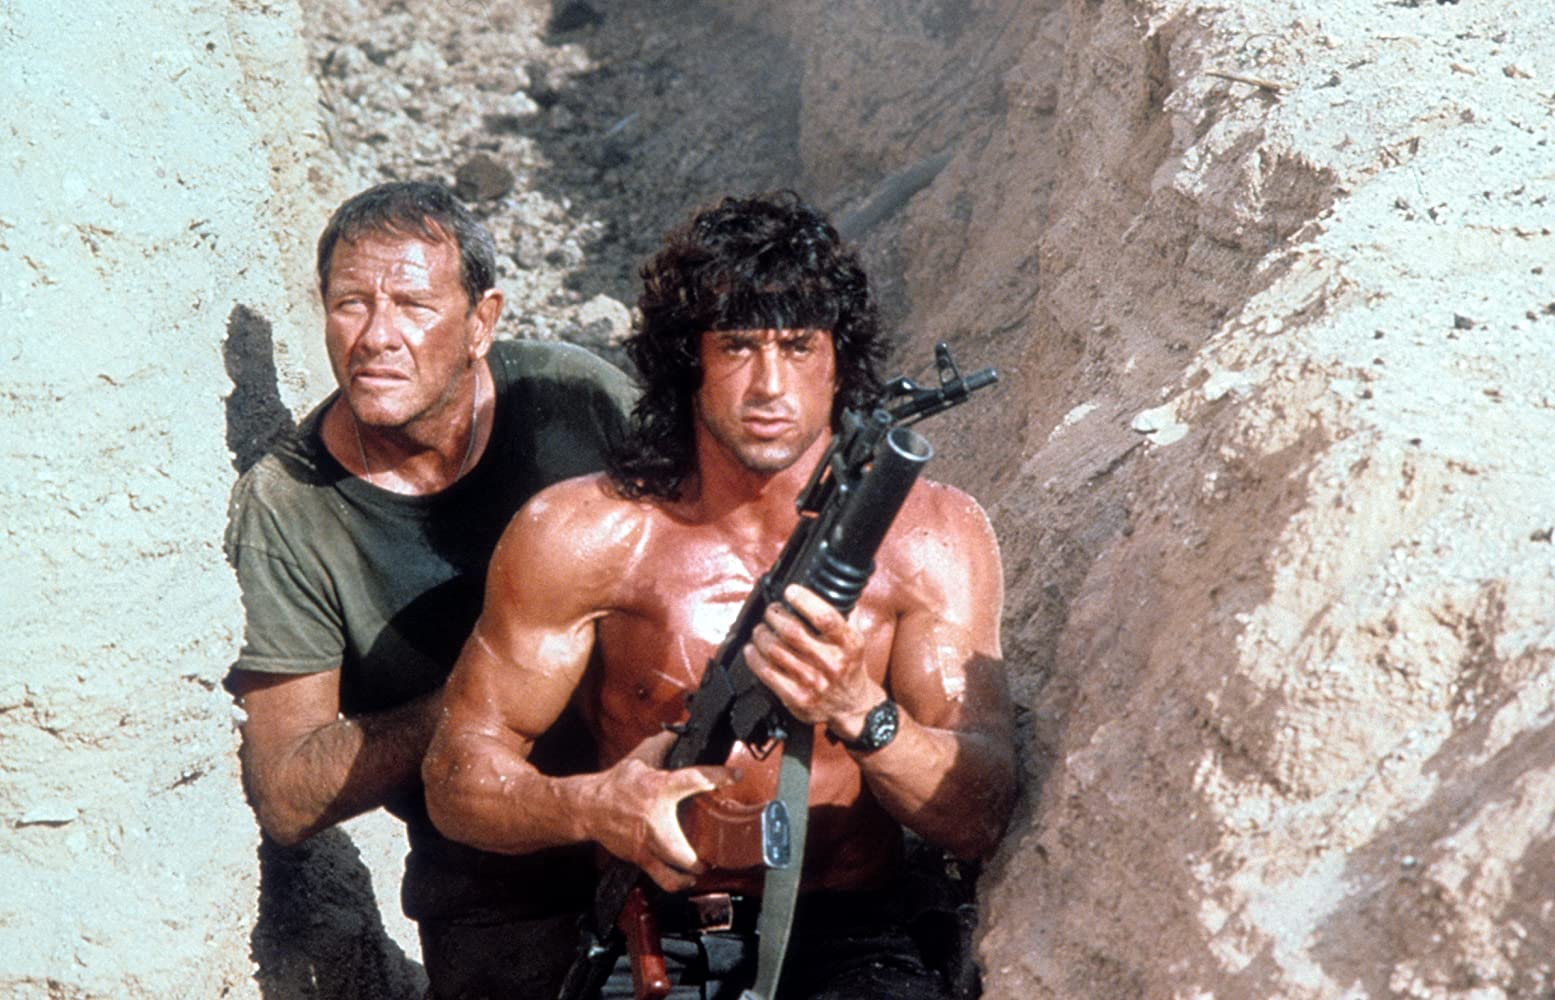 Sylvester Stallone and Richard Crenna in Rambo III (1988)